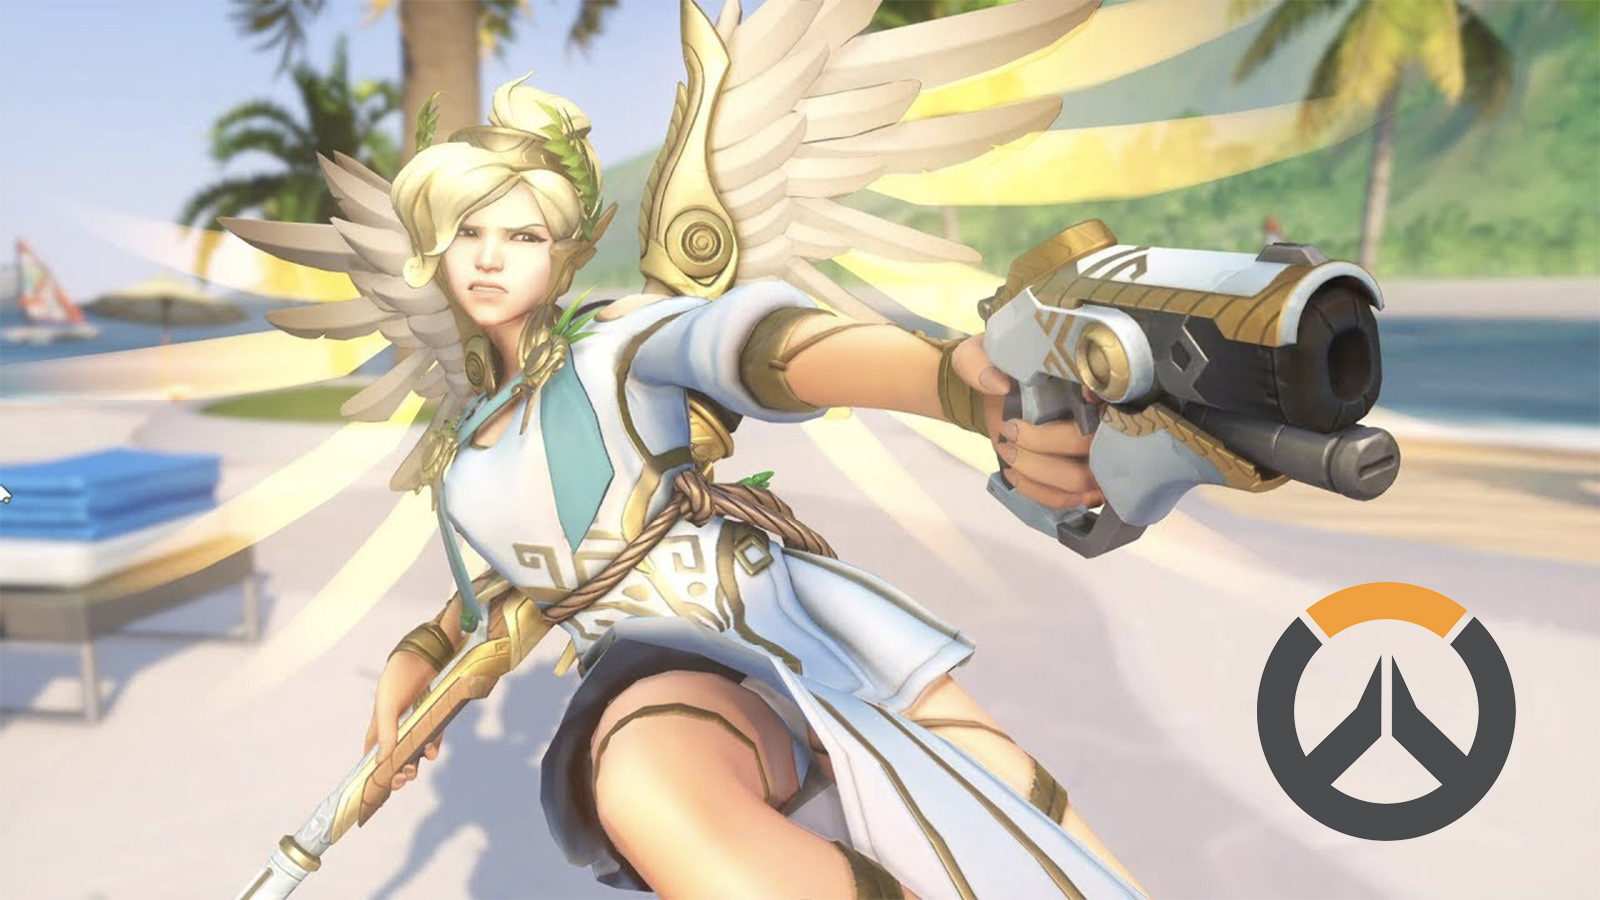 Winged Victory Mercy Cosplay Overwatch